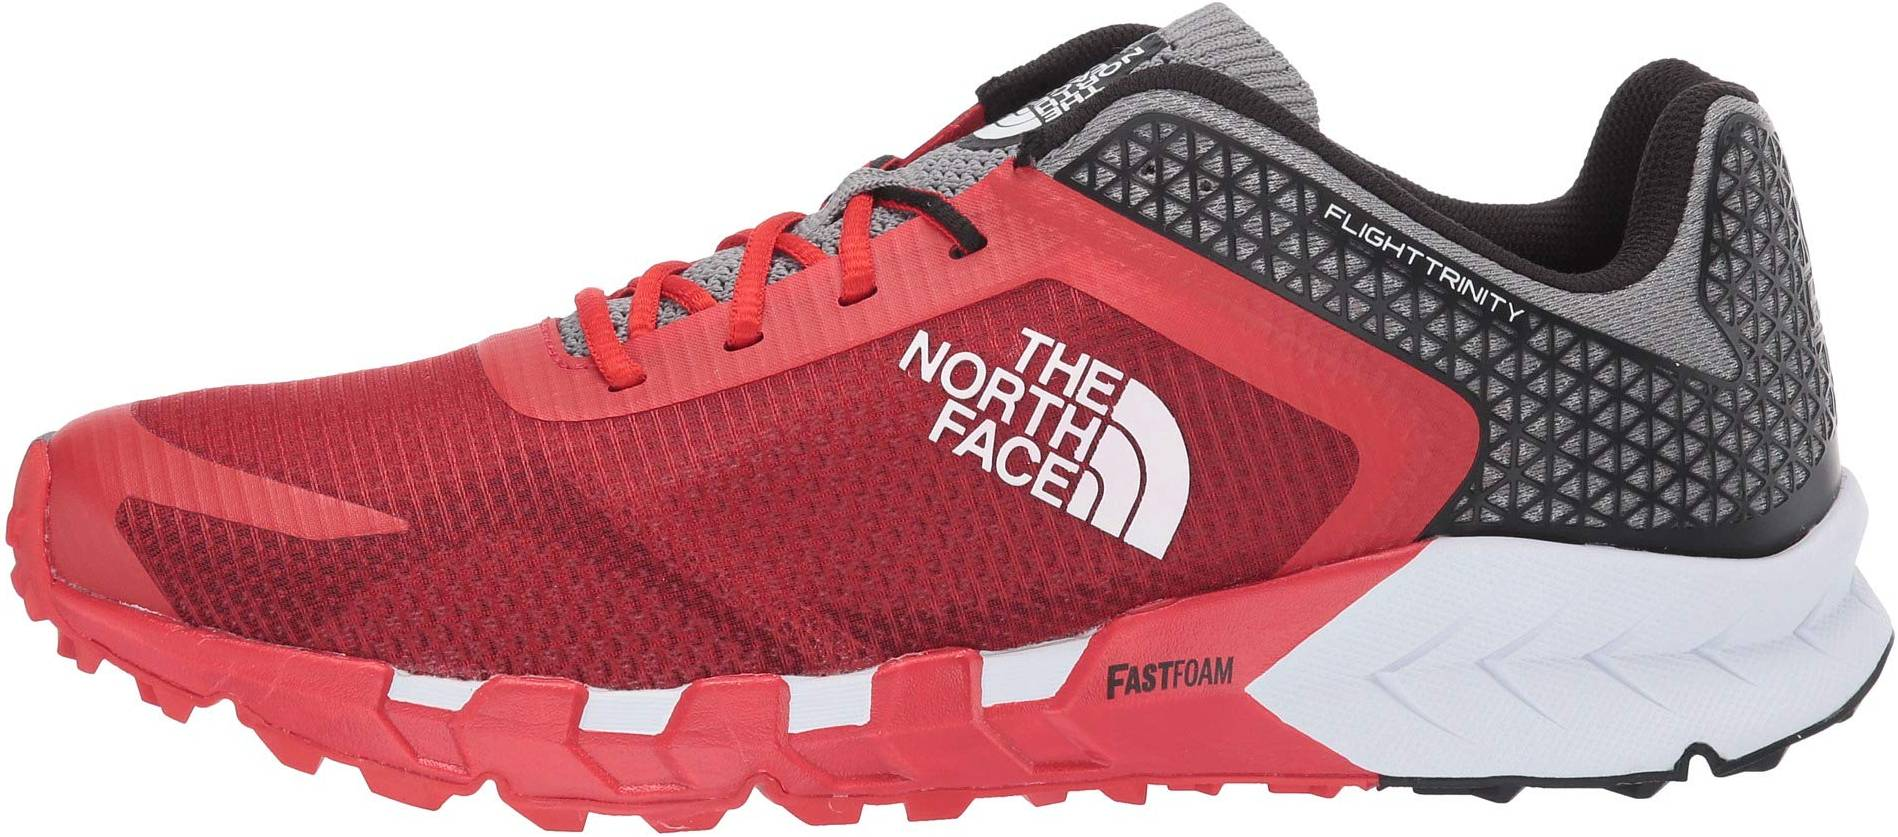 Review of The North Face Flight Trinity